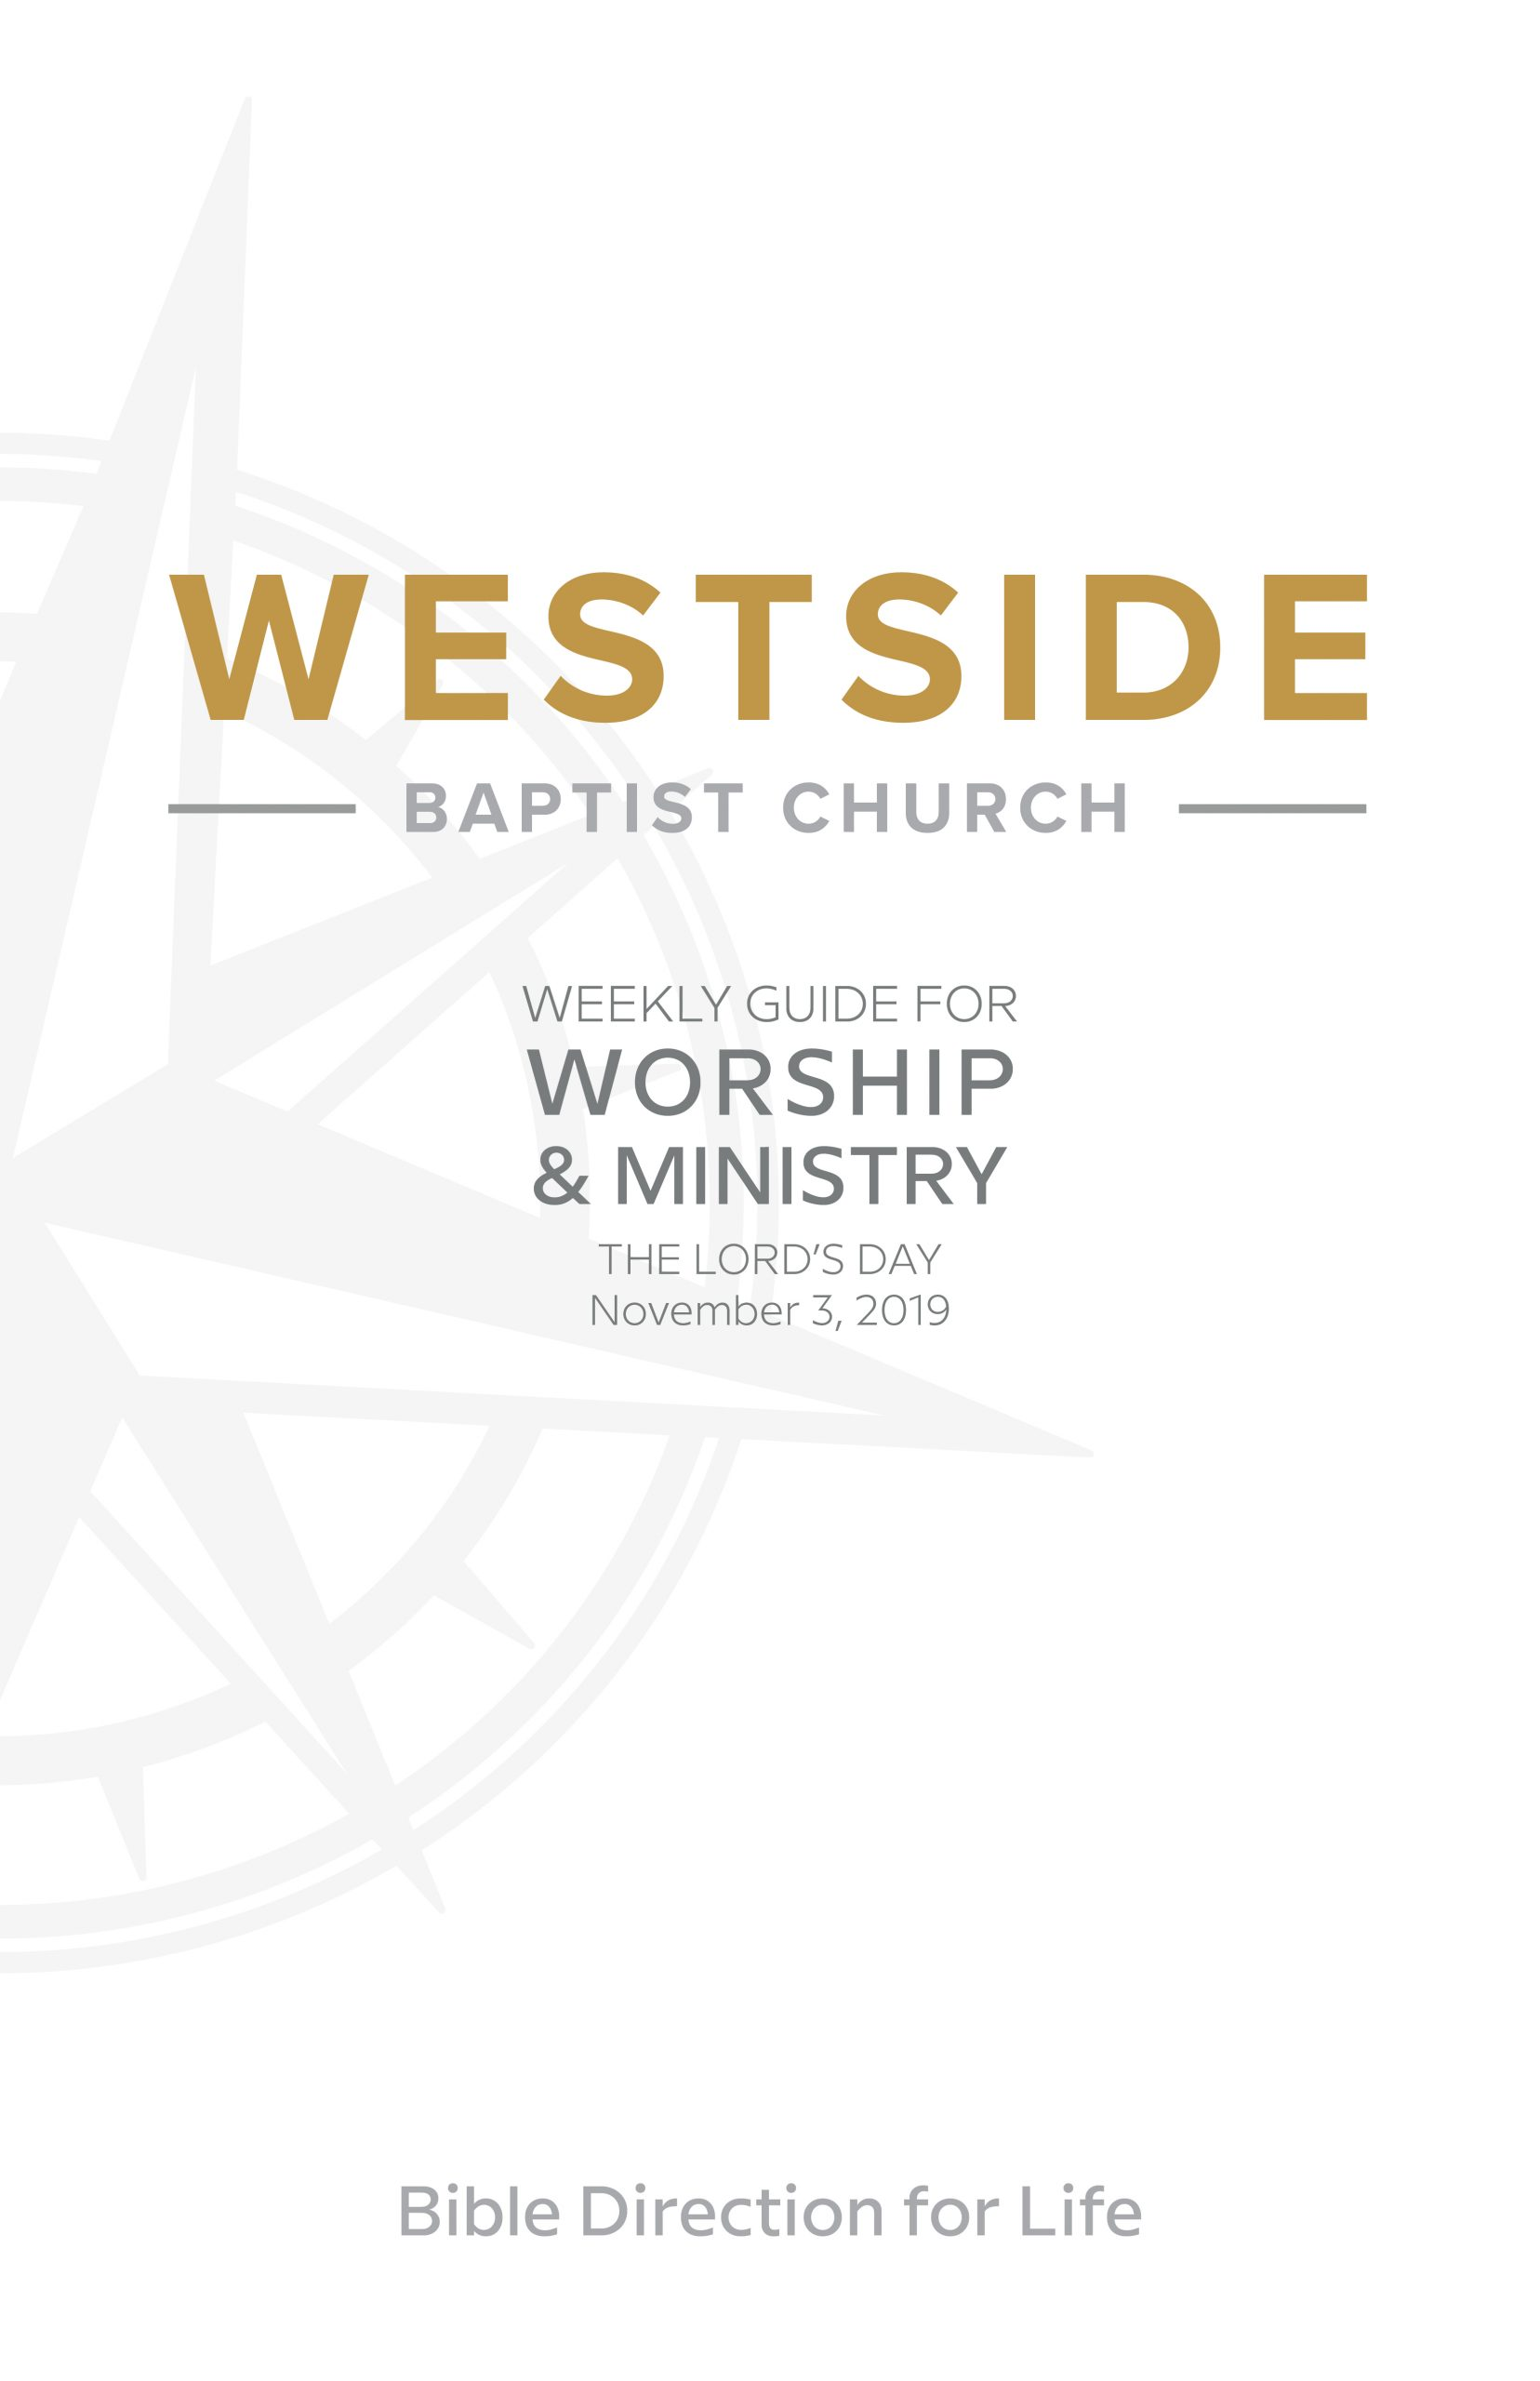 Weekly Guide for Worship and Ministry—November 3